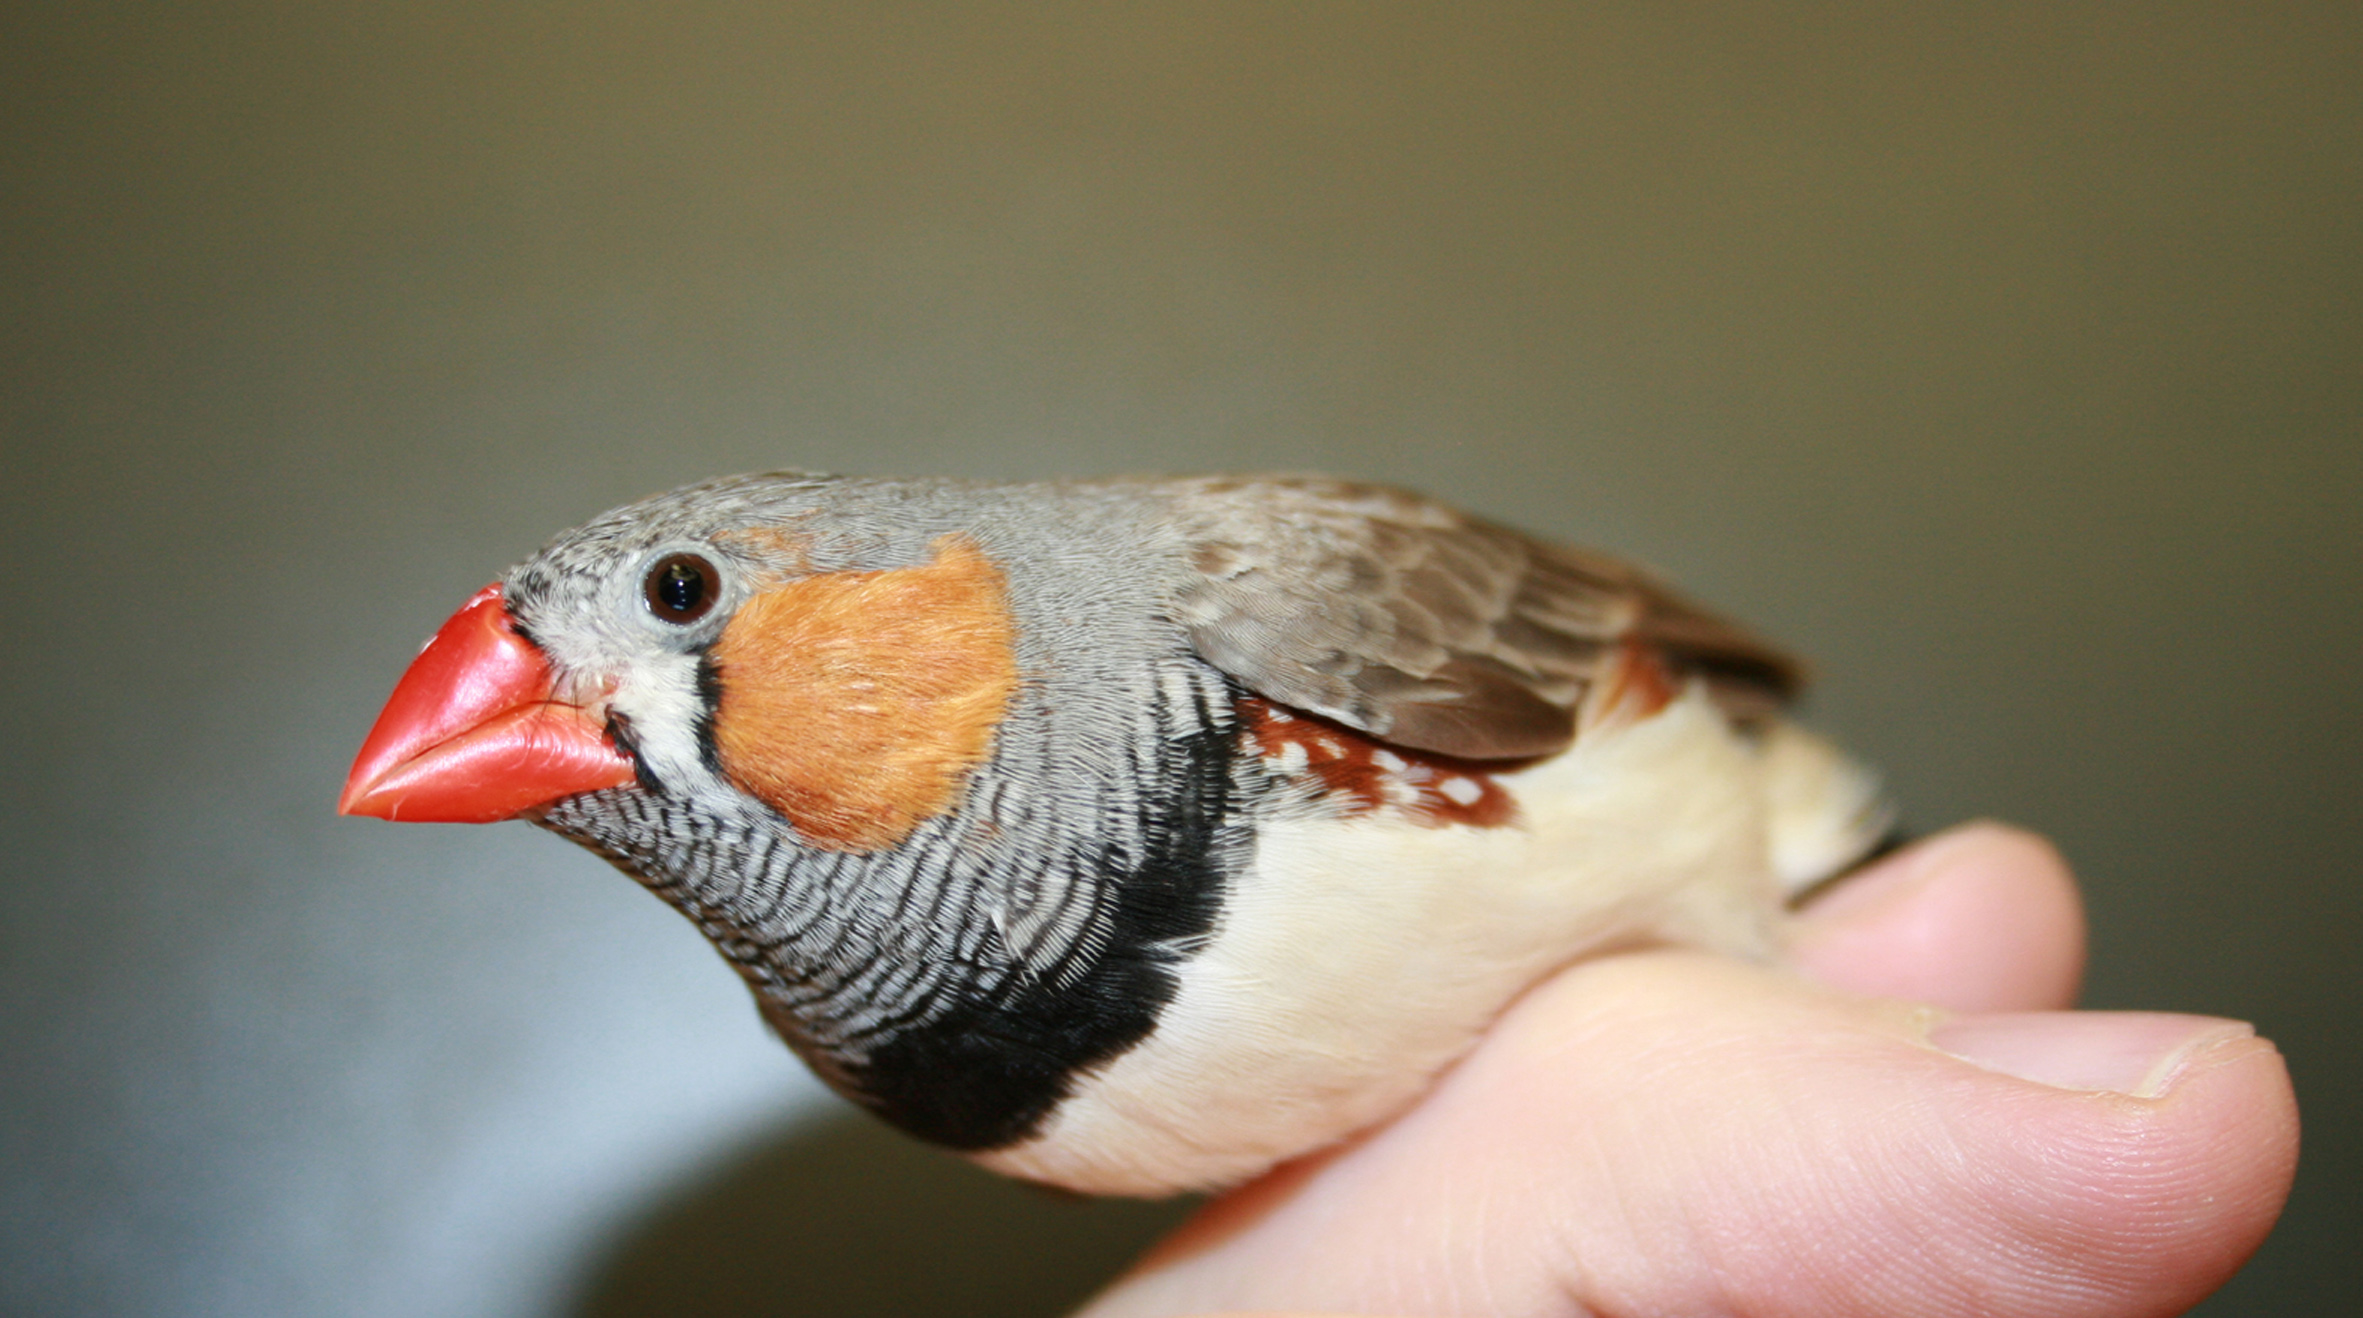 University of Utah scientists studied the colorful zebra finch to learn more about the factors that allow the songbirds to sing over a wide range of frequencies while females utter only brief lower-frequency calls. They found that the males' more powerful vocal muscles were much more important than the pressure of air within the lungs.